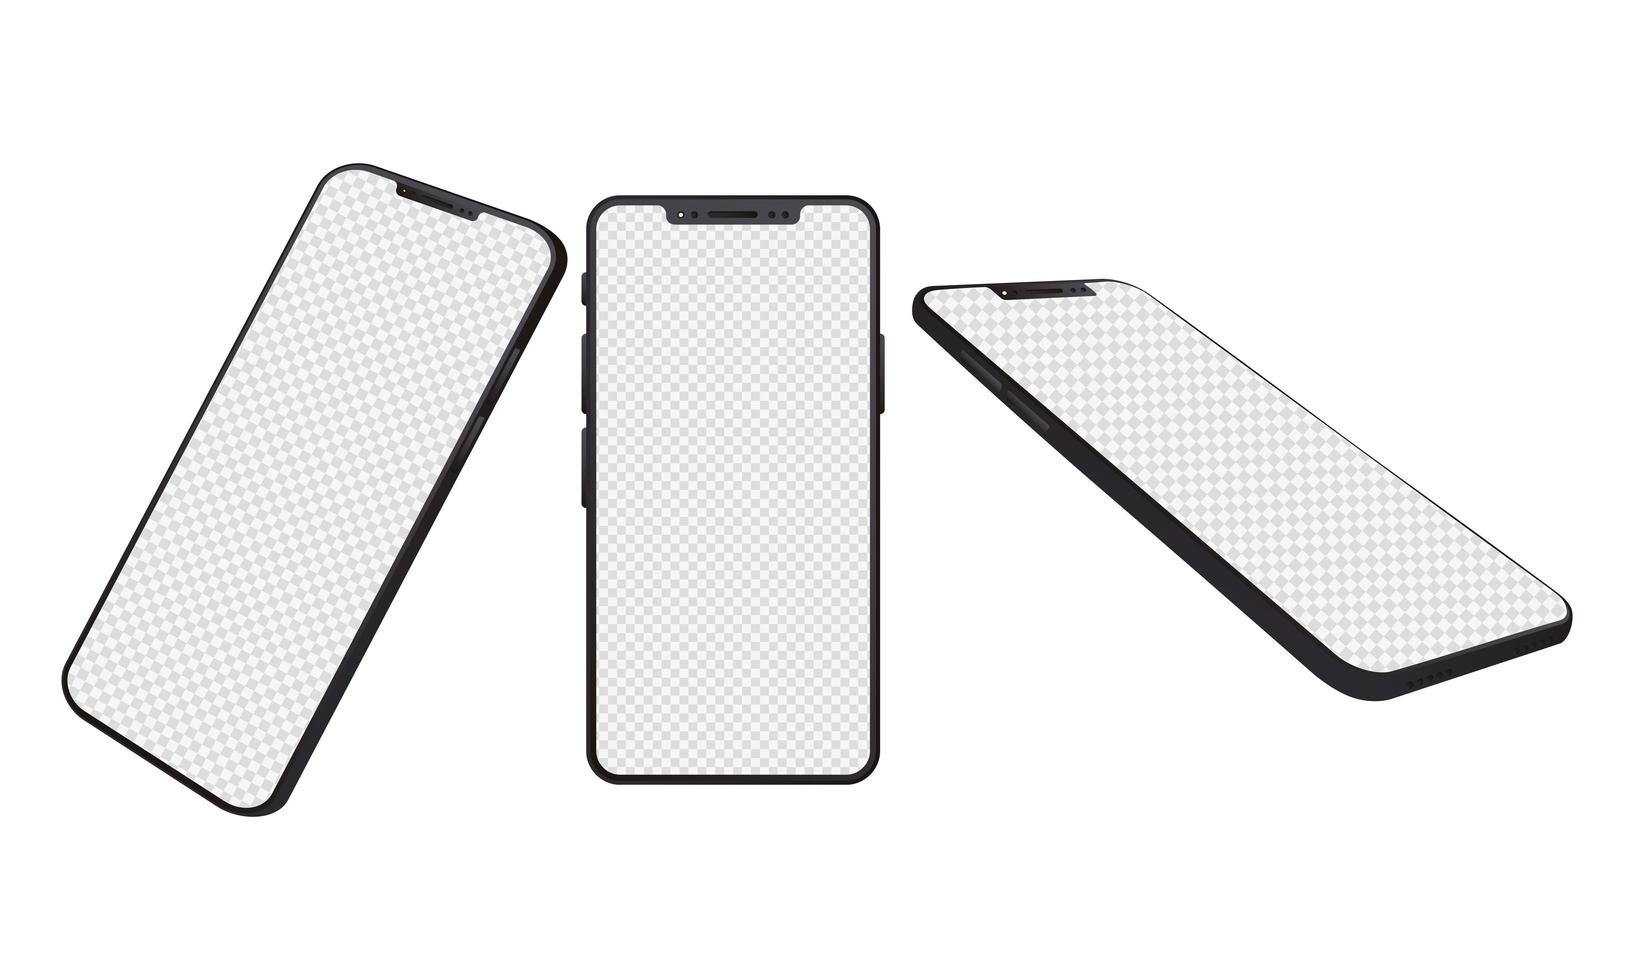 Plain smartphone mock-up devices vector